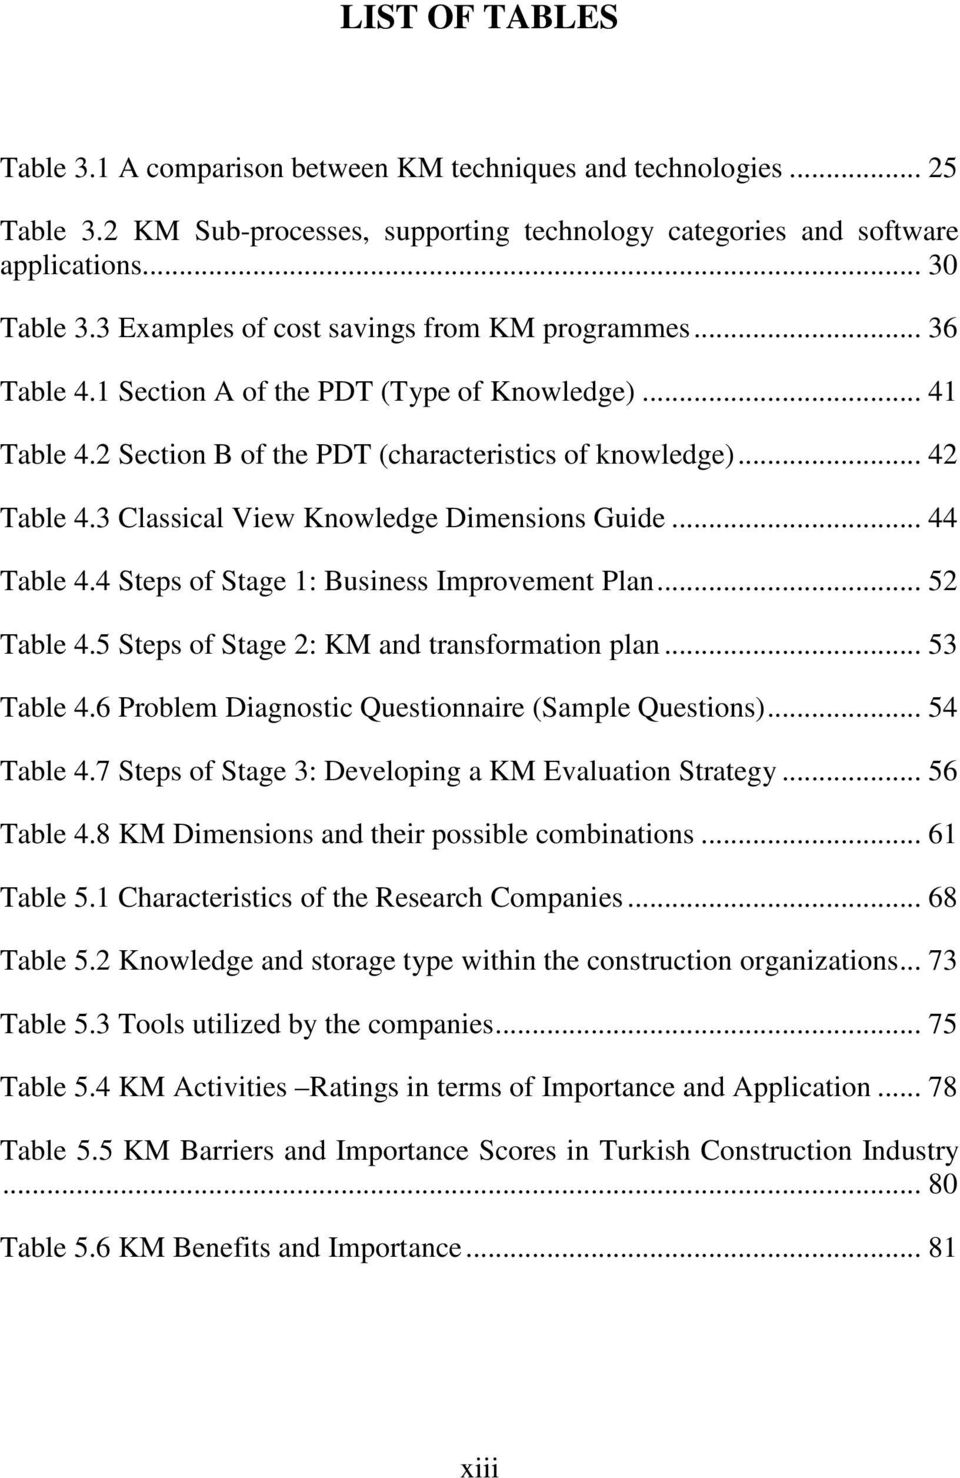 3 Classical View Knowledge Dimensions Guide... 44 Table 4.4 Steps of Stage 1: Business Improvement Plan... 52 Table 4.5 Steps of Stage 2: KM and transformation plan... 53 Table 4.